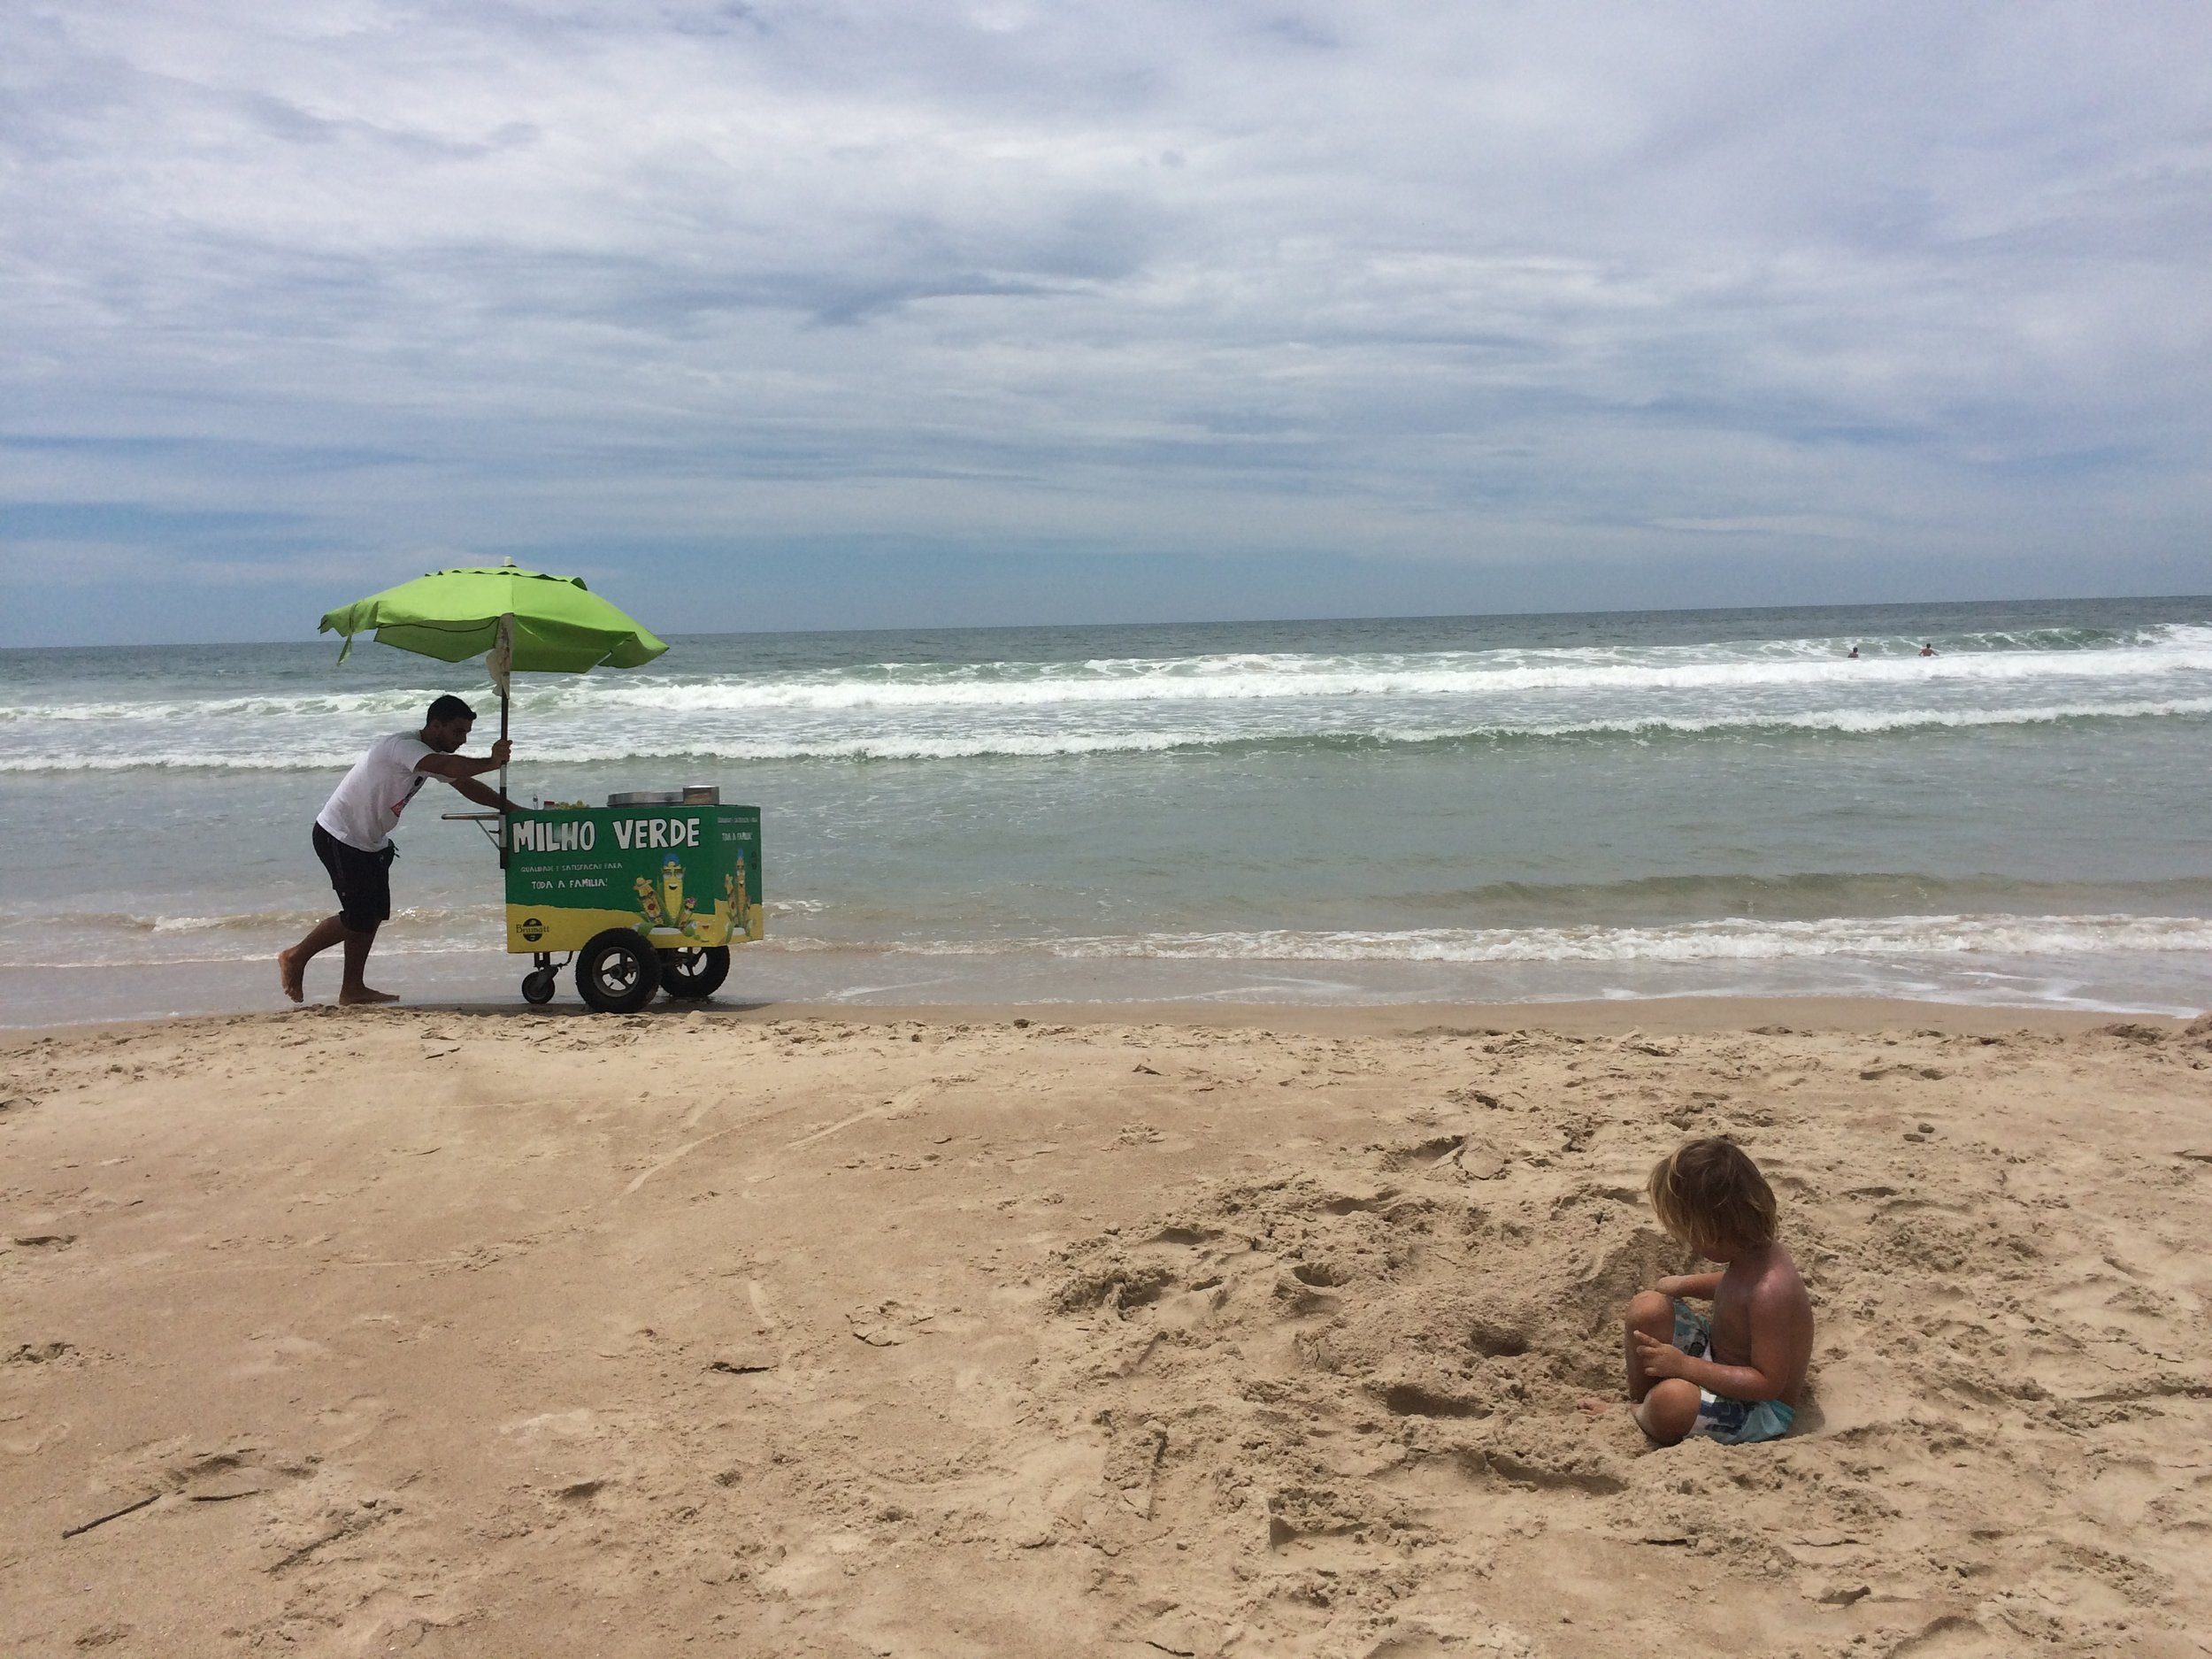 hugo loves the sand he could play in the sand all day. the man on the beach is selling corn which is amazing because they don't do that any were else in the world